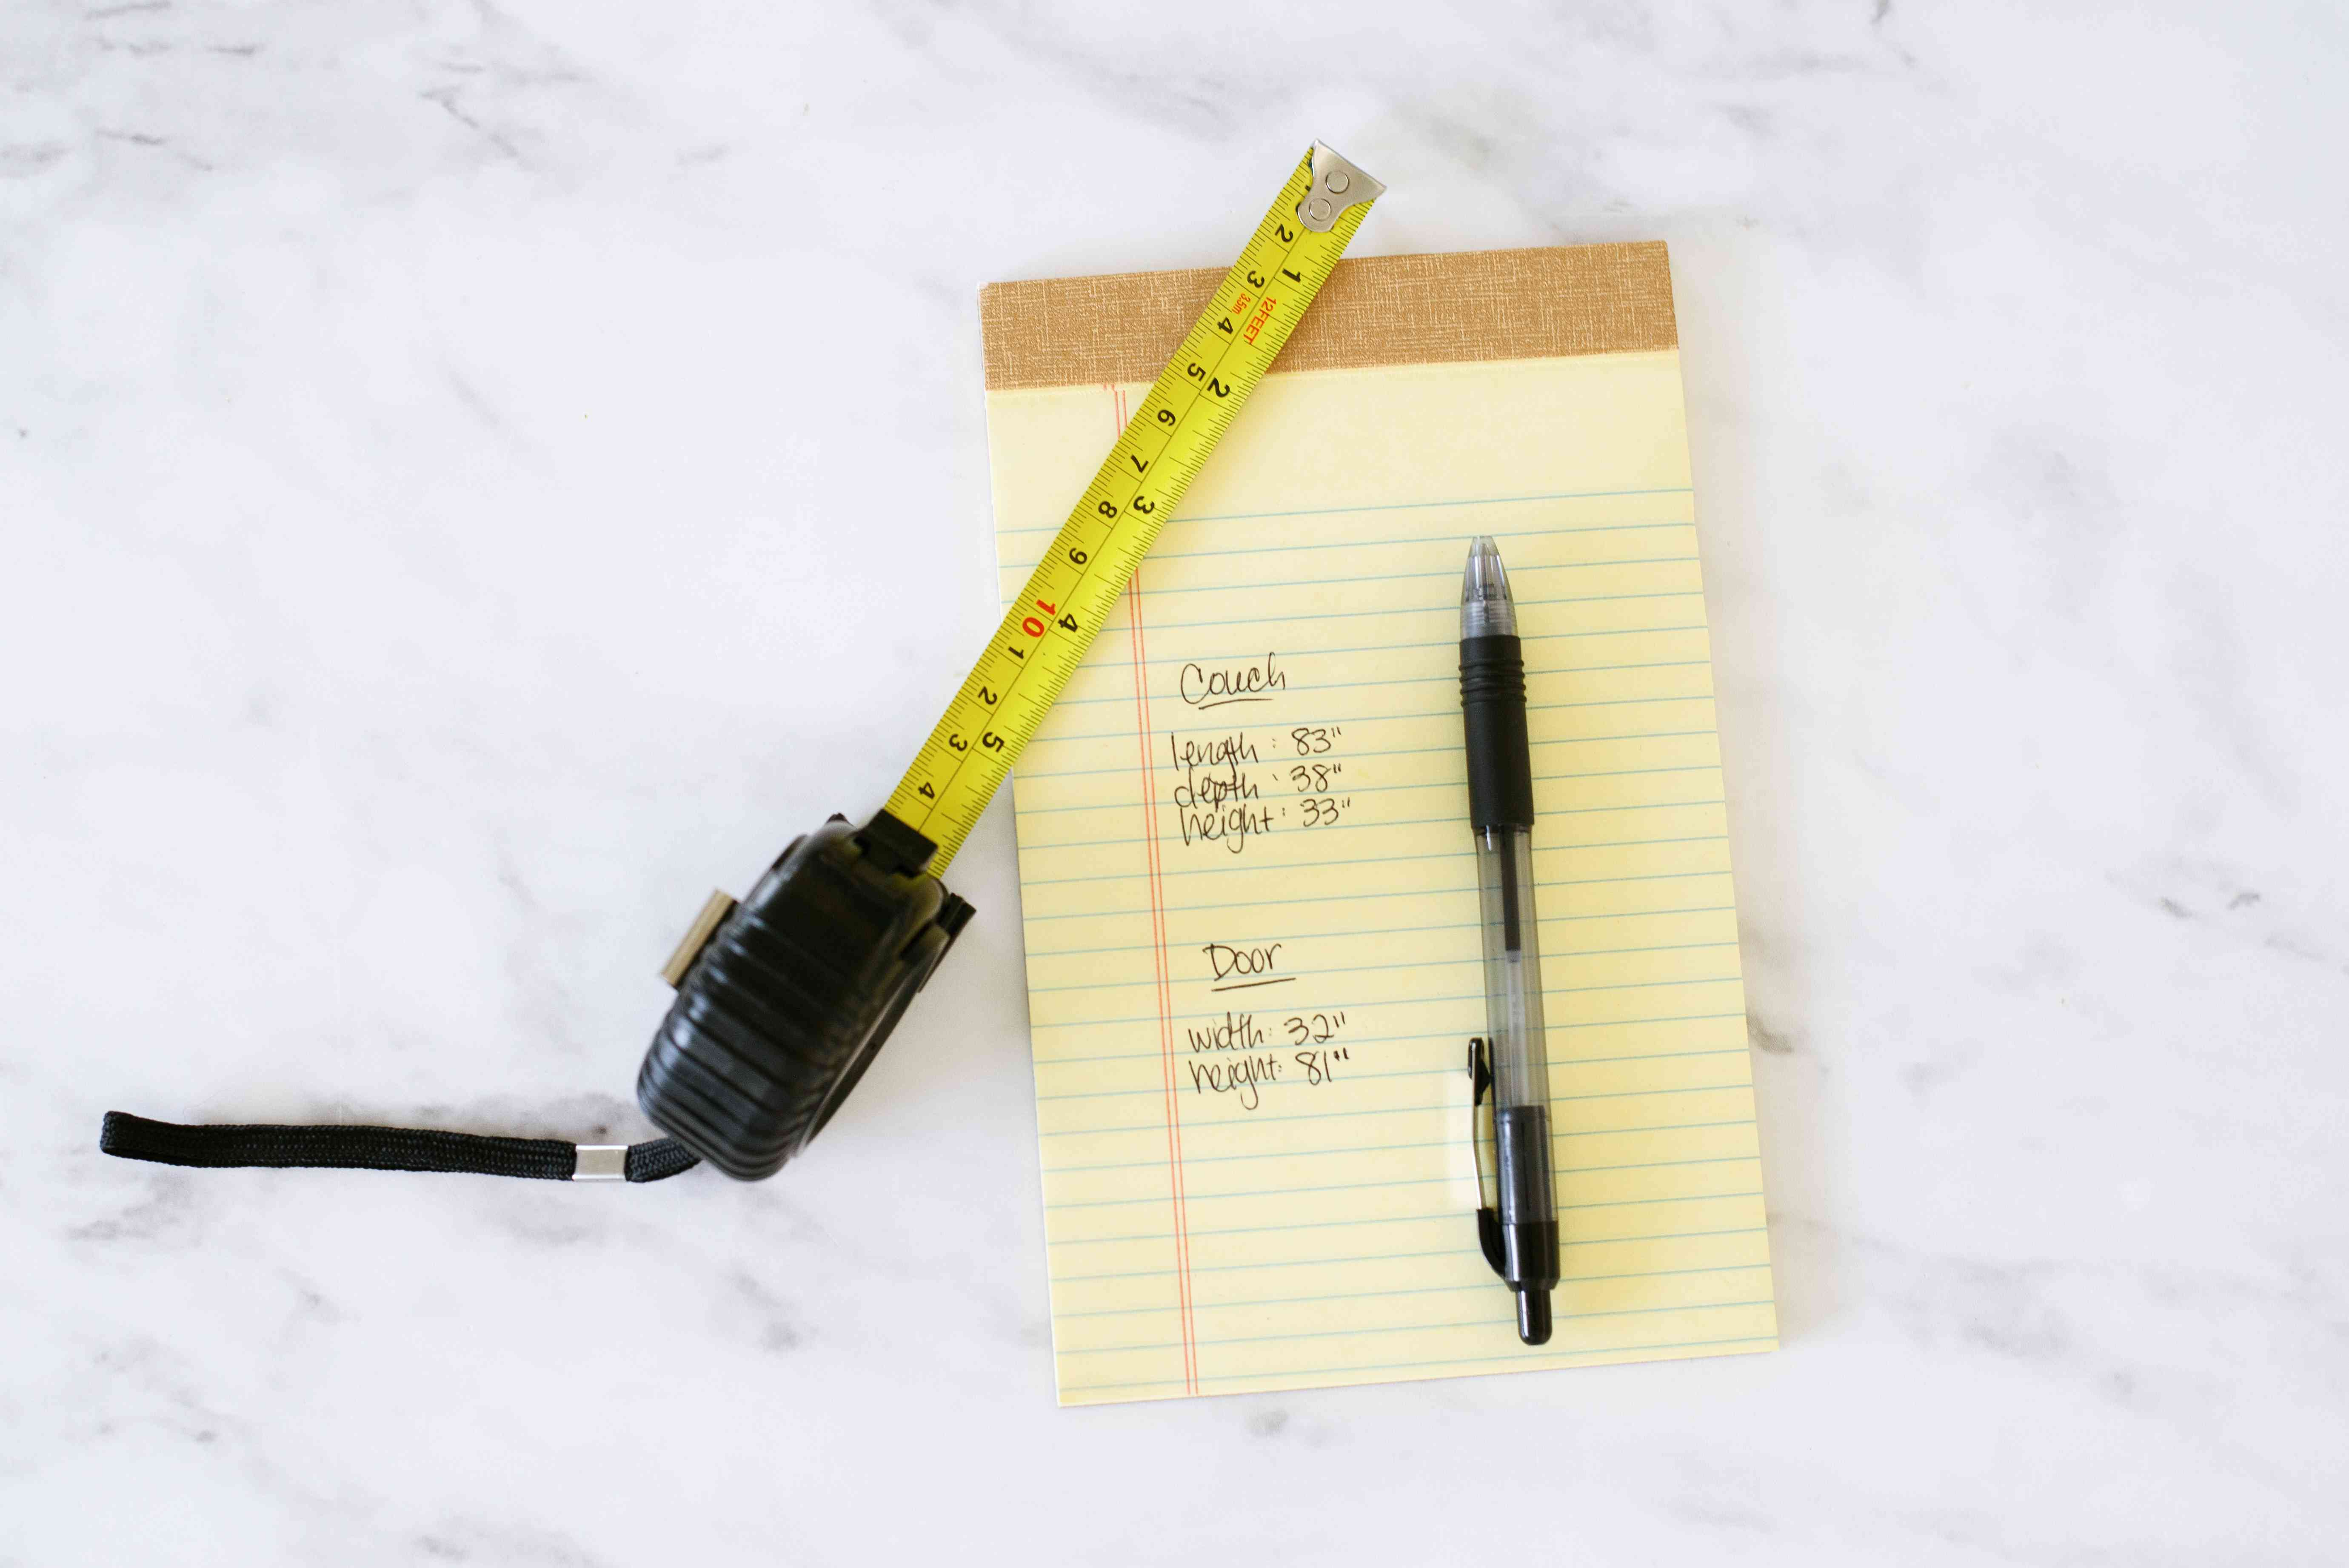 Measurements written on yellow notepad with pen and measuring tape